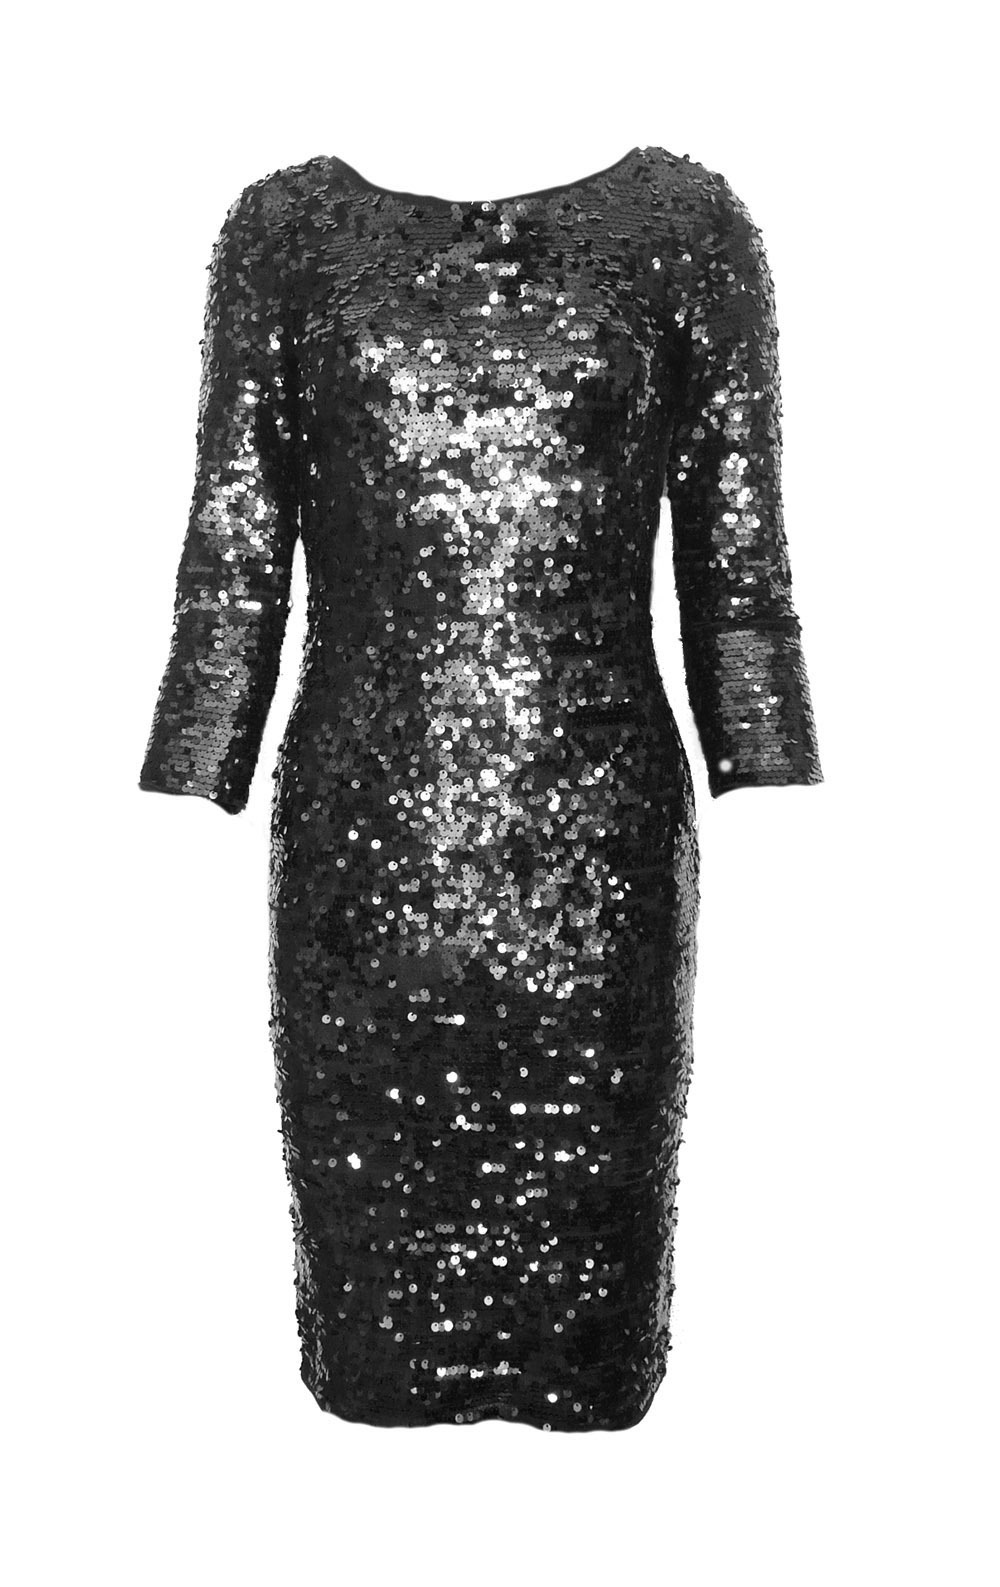 dress black sequin.jpg